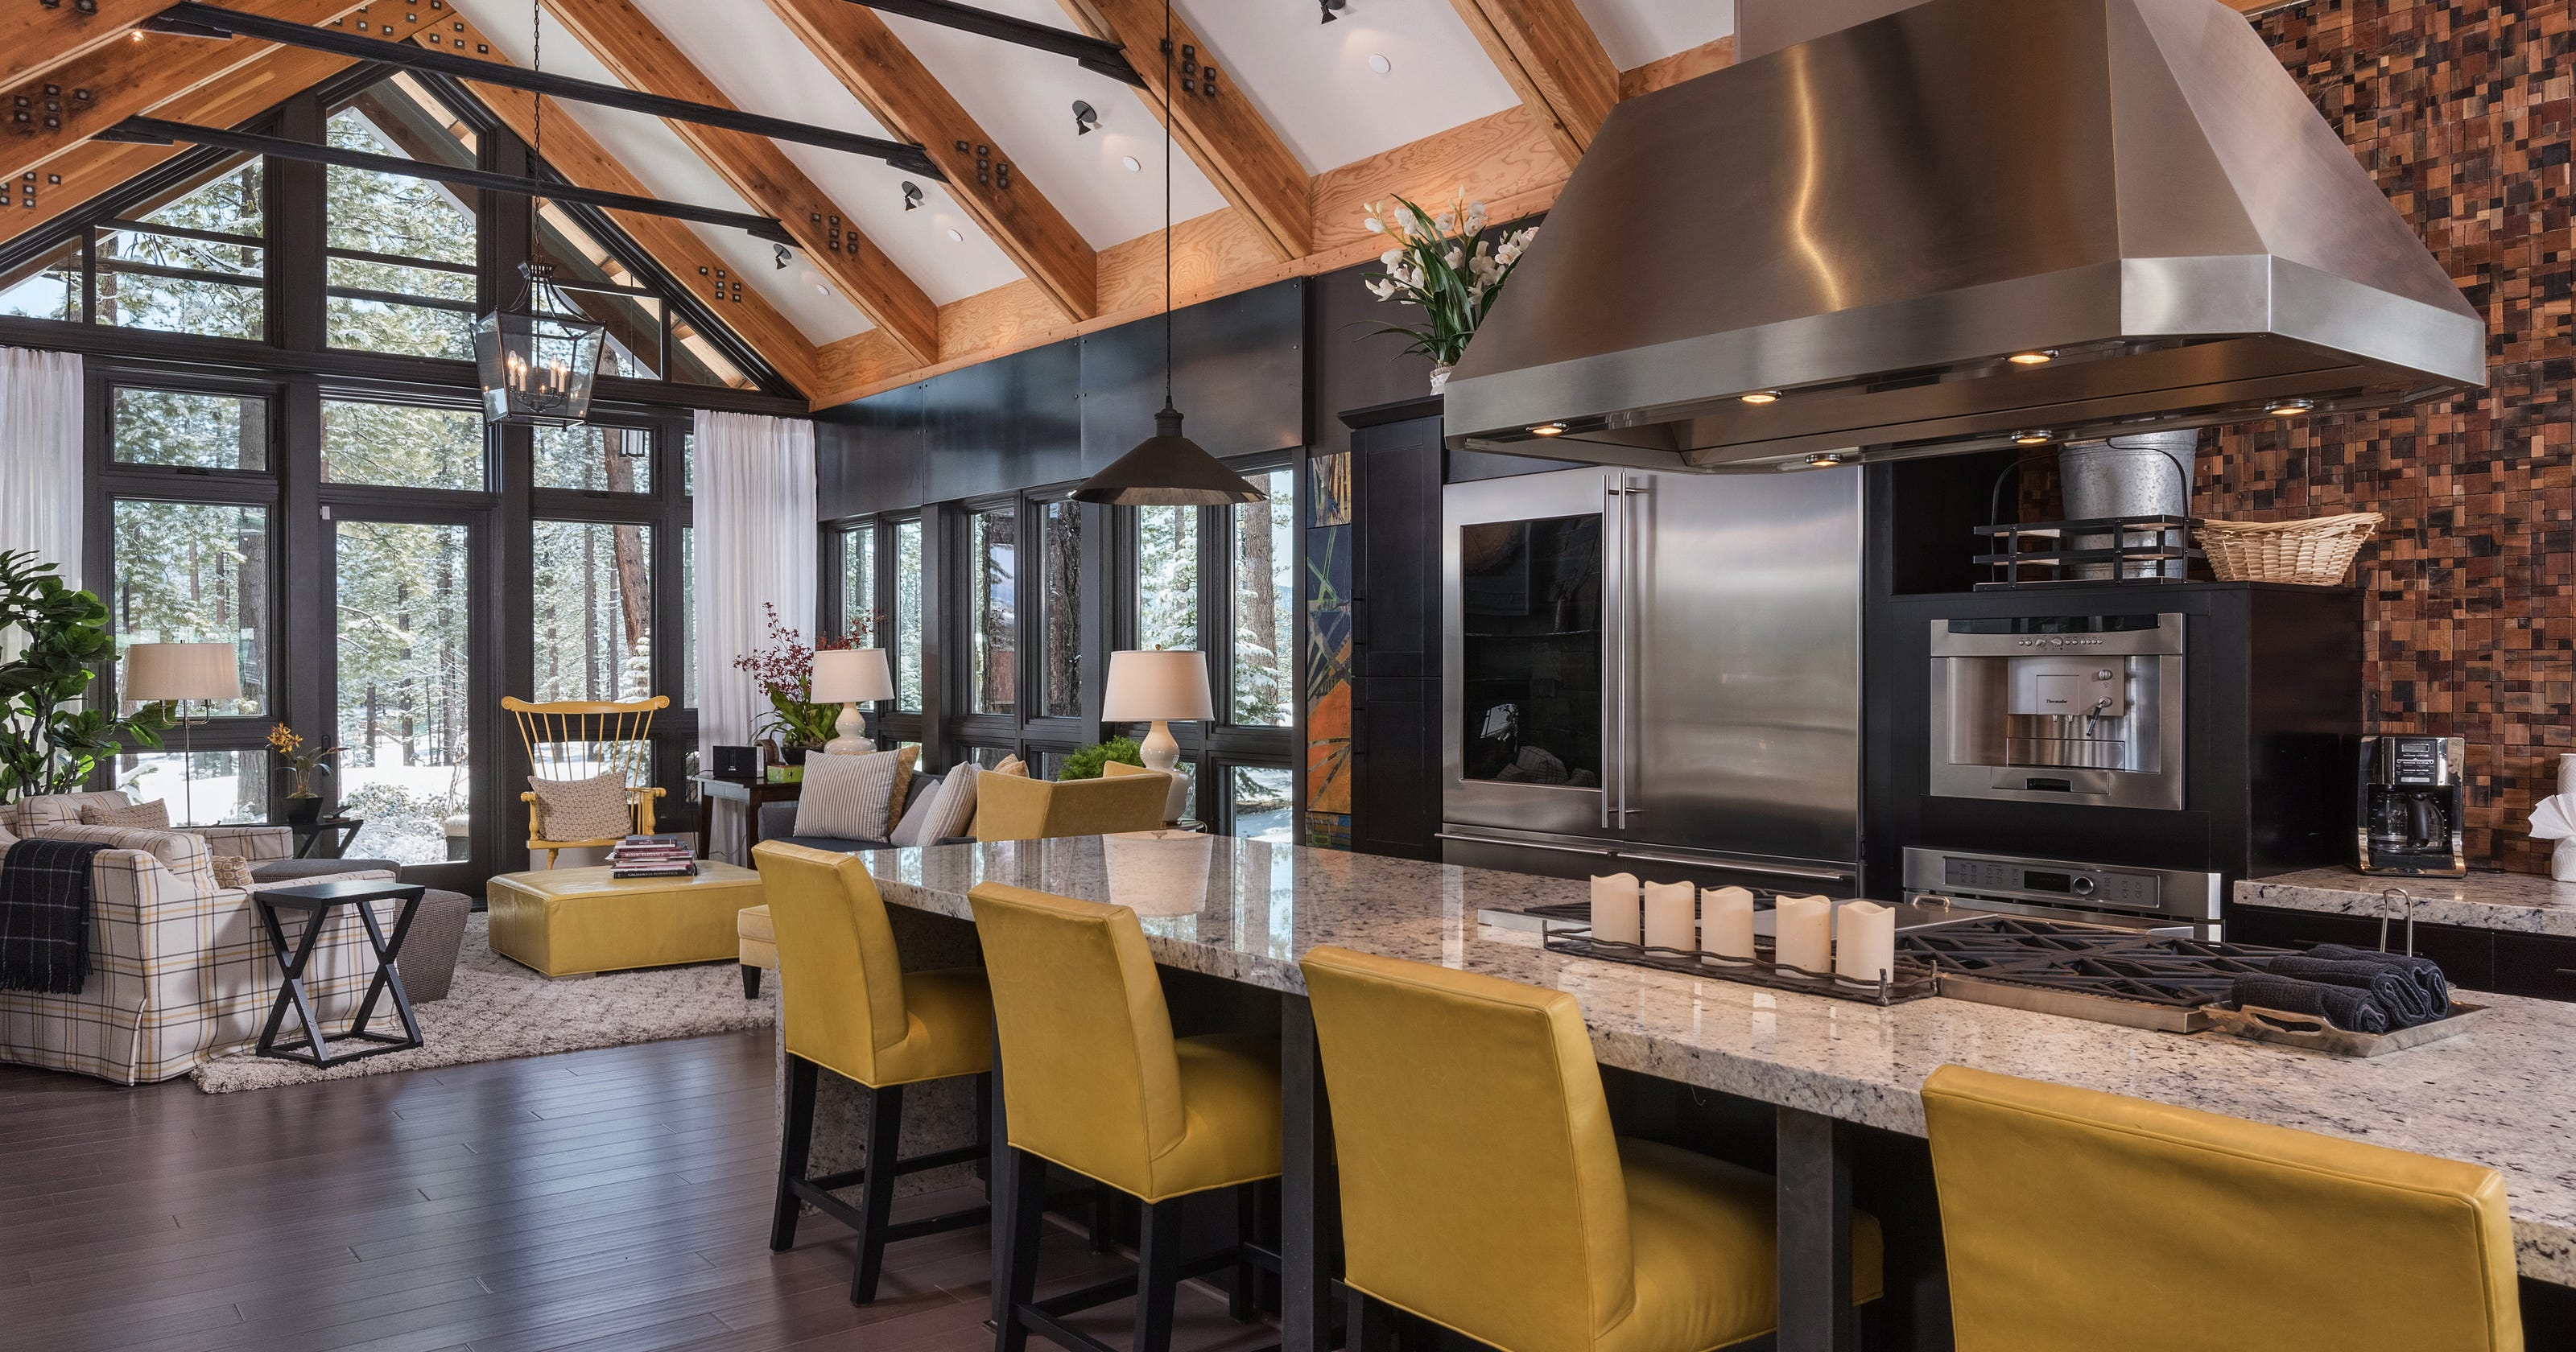 Hgtv Dream Home For Sale For 2 5m At Tahoe